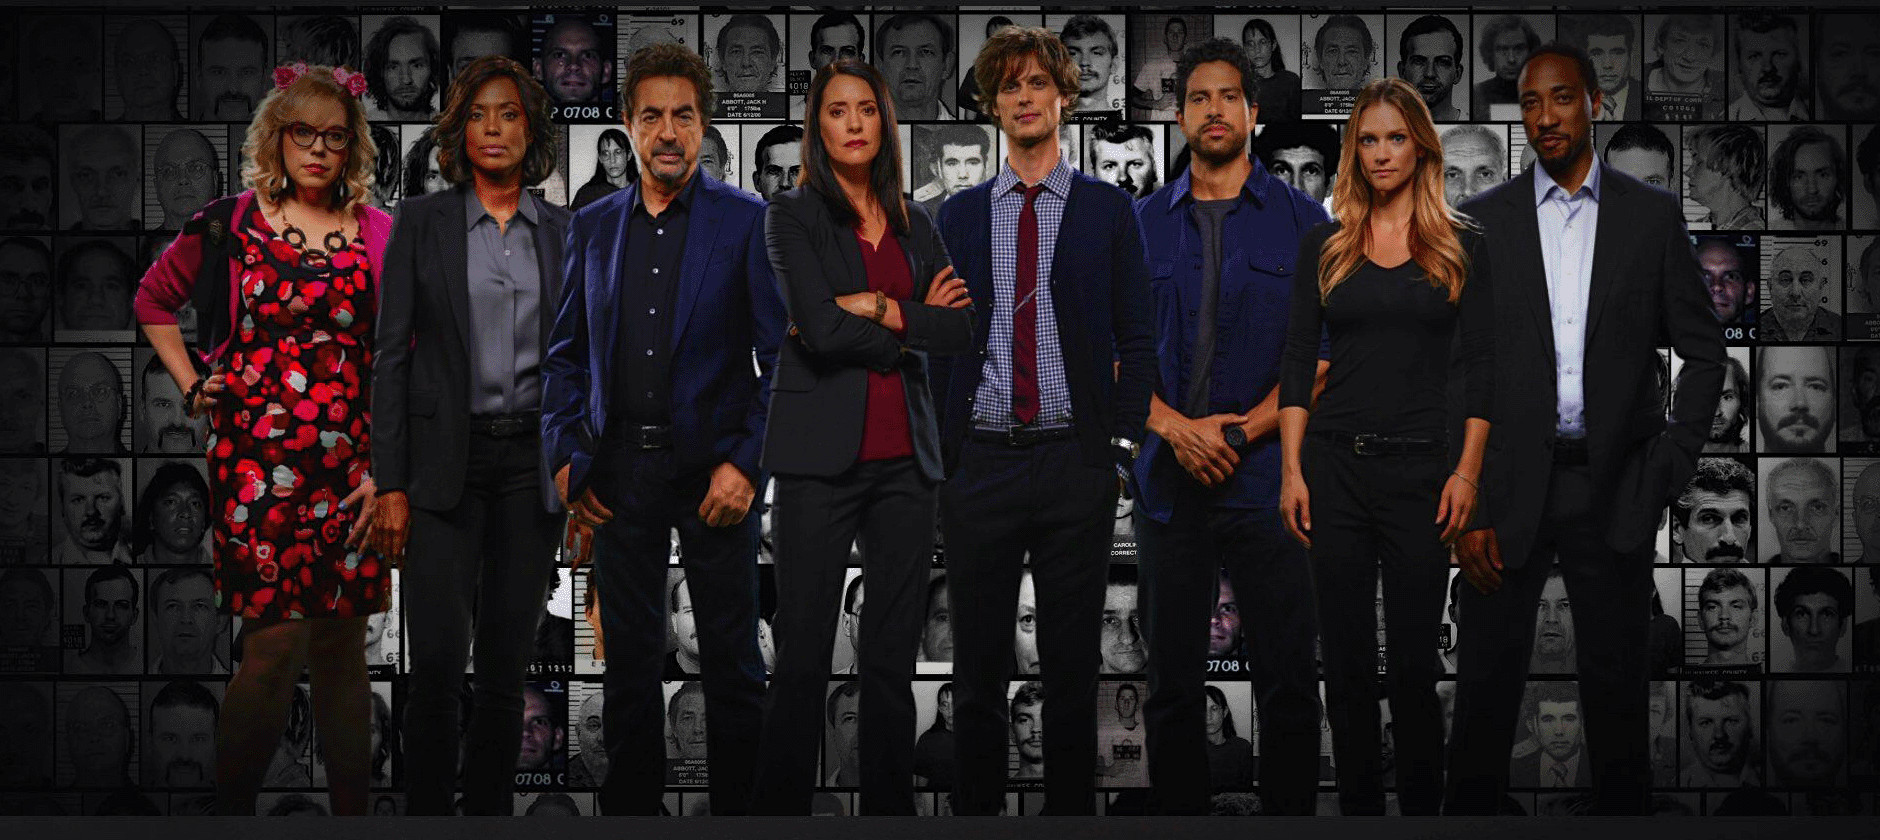 CRIMINAL MINDS - Stagione 12: la caccia ai serial killer continua